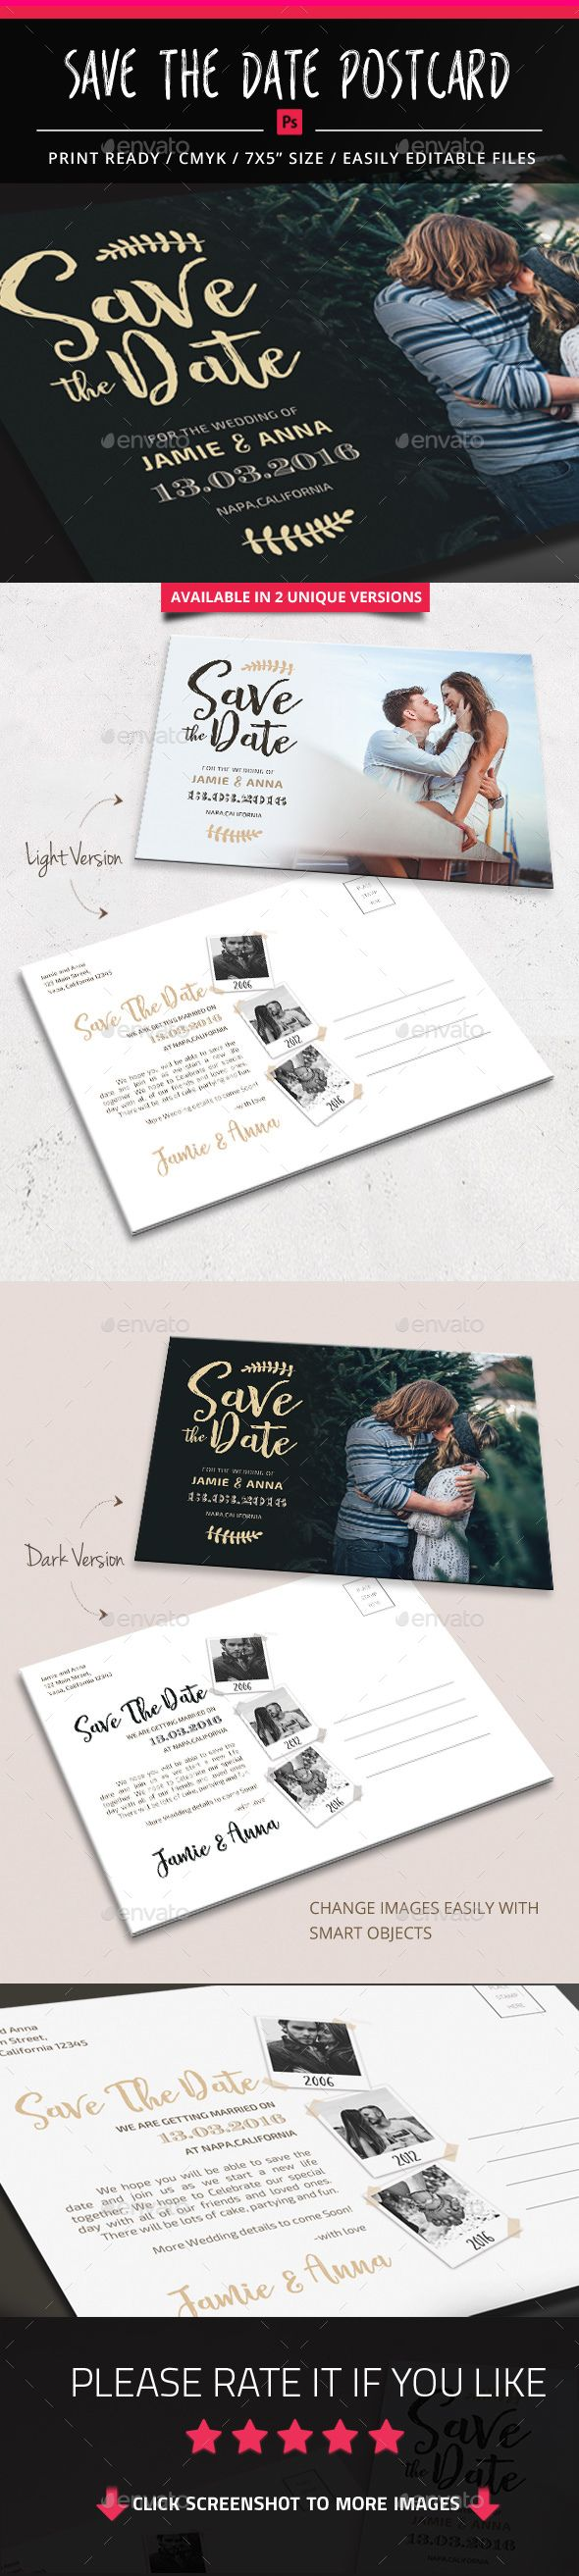 Save The Date Postcard Template PSD #design Download: http://graphicriver.net/item/save-the-date-postcard/14428760?ref=ksioks